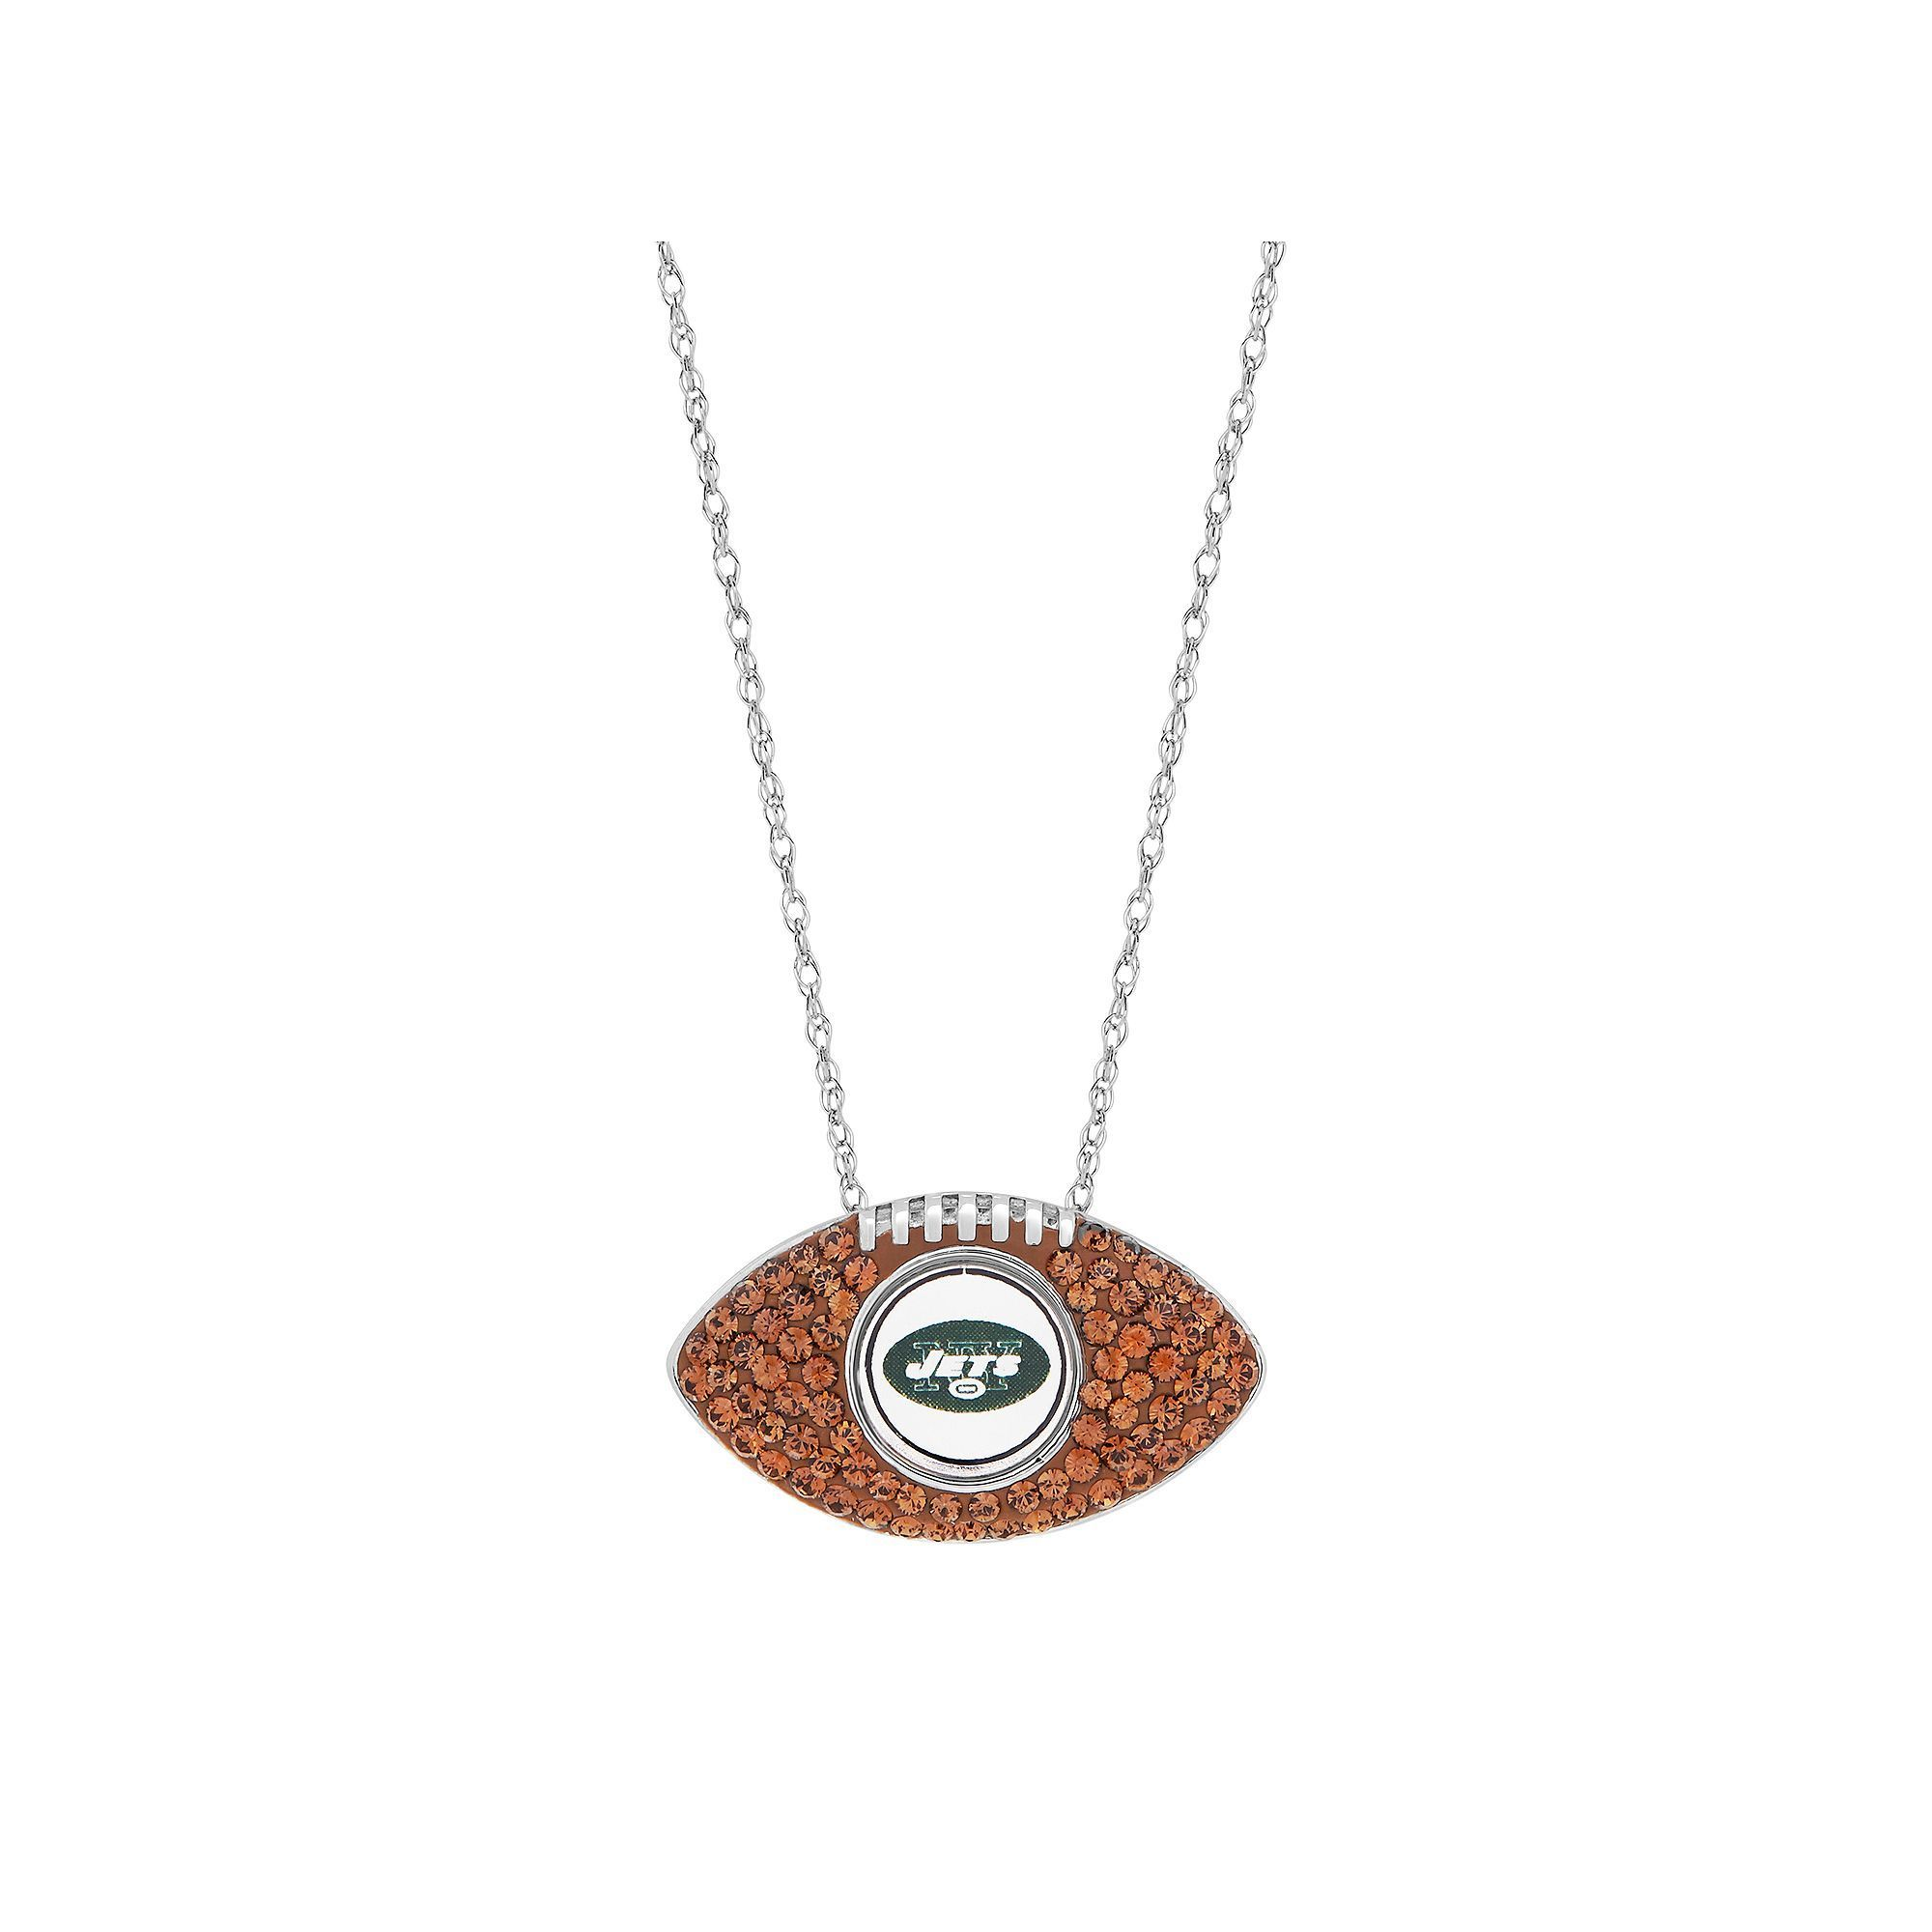 over necklace football overlay orders free finesque gold overstock white on watches product pendant jewelry diamond shipping accent